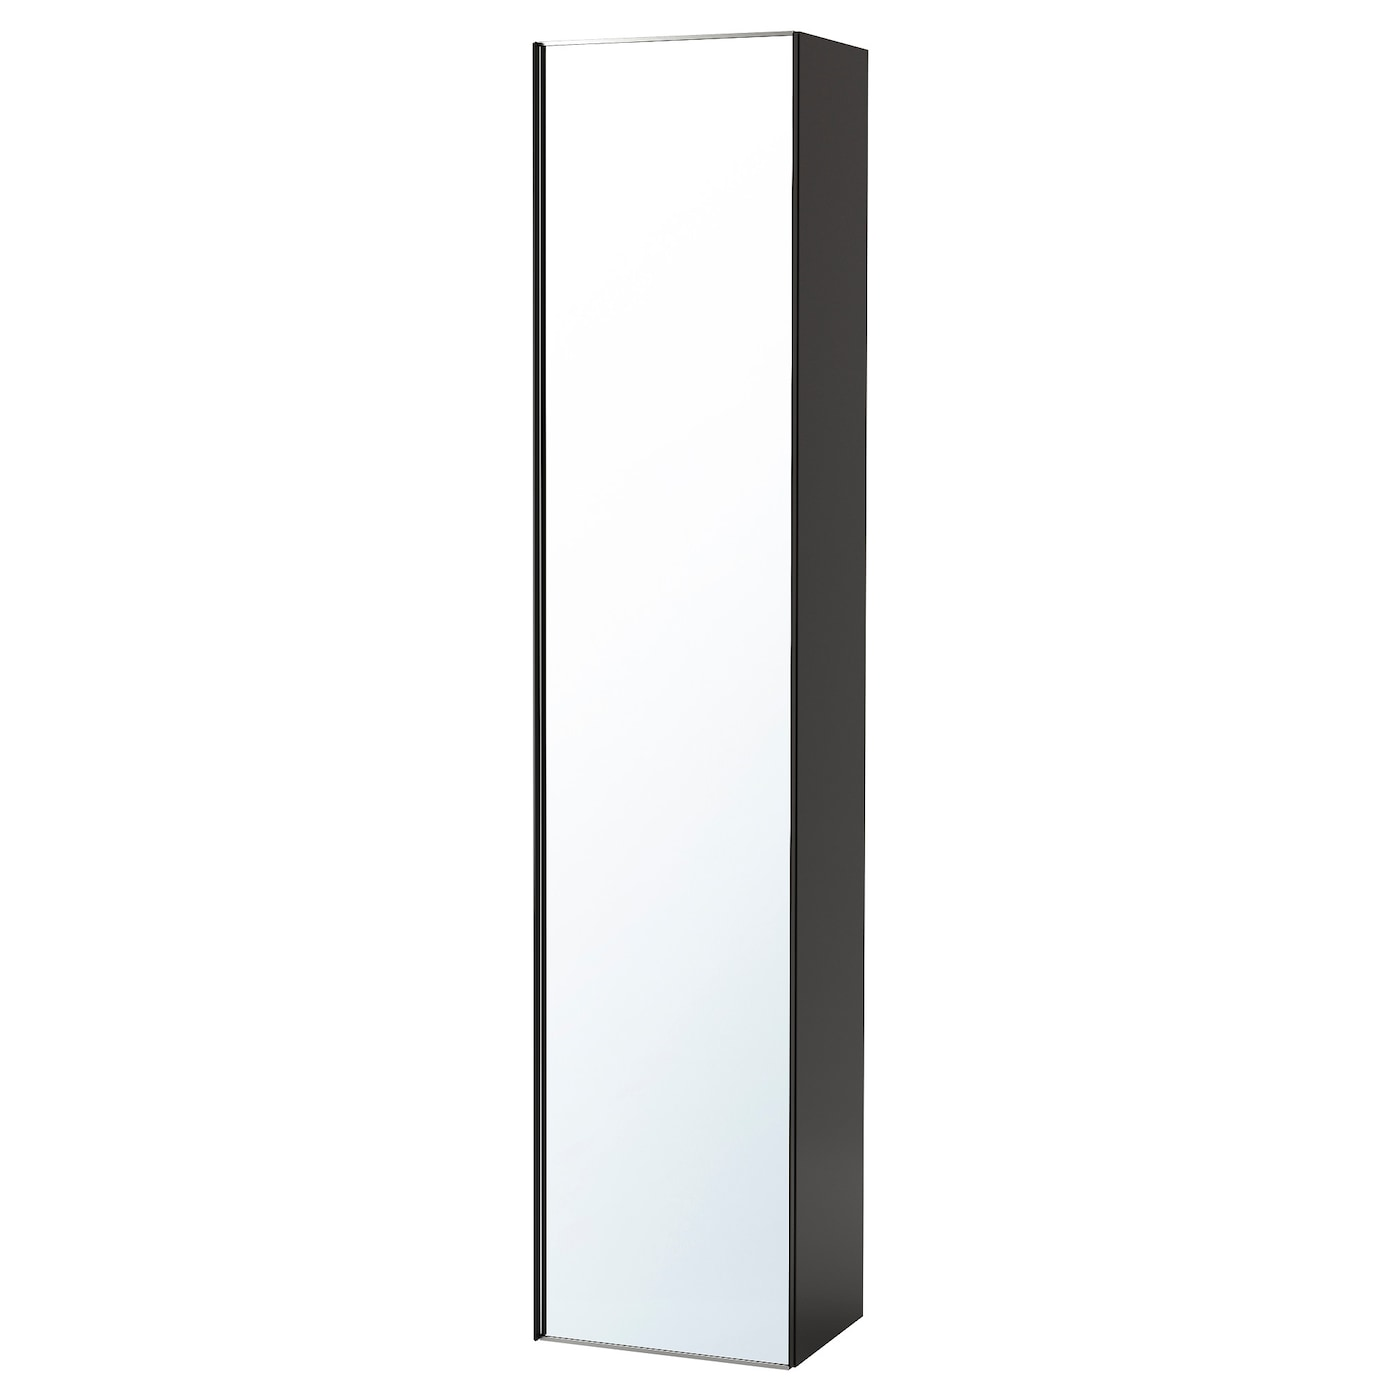 Godmorgon high cabinet with mirror door high gloss grey 40x32x192 cm ikea - Grande armoire blanche ...